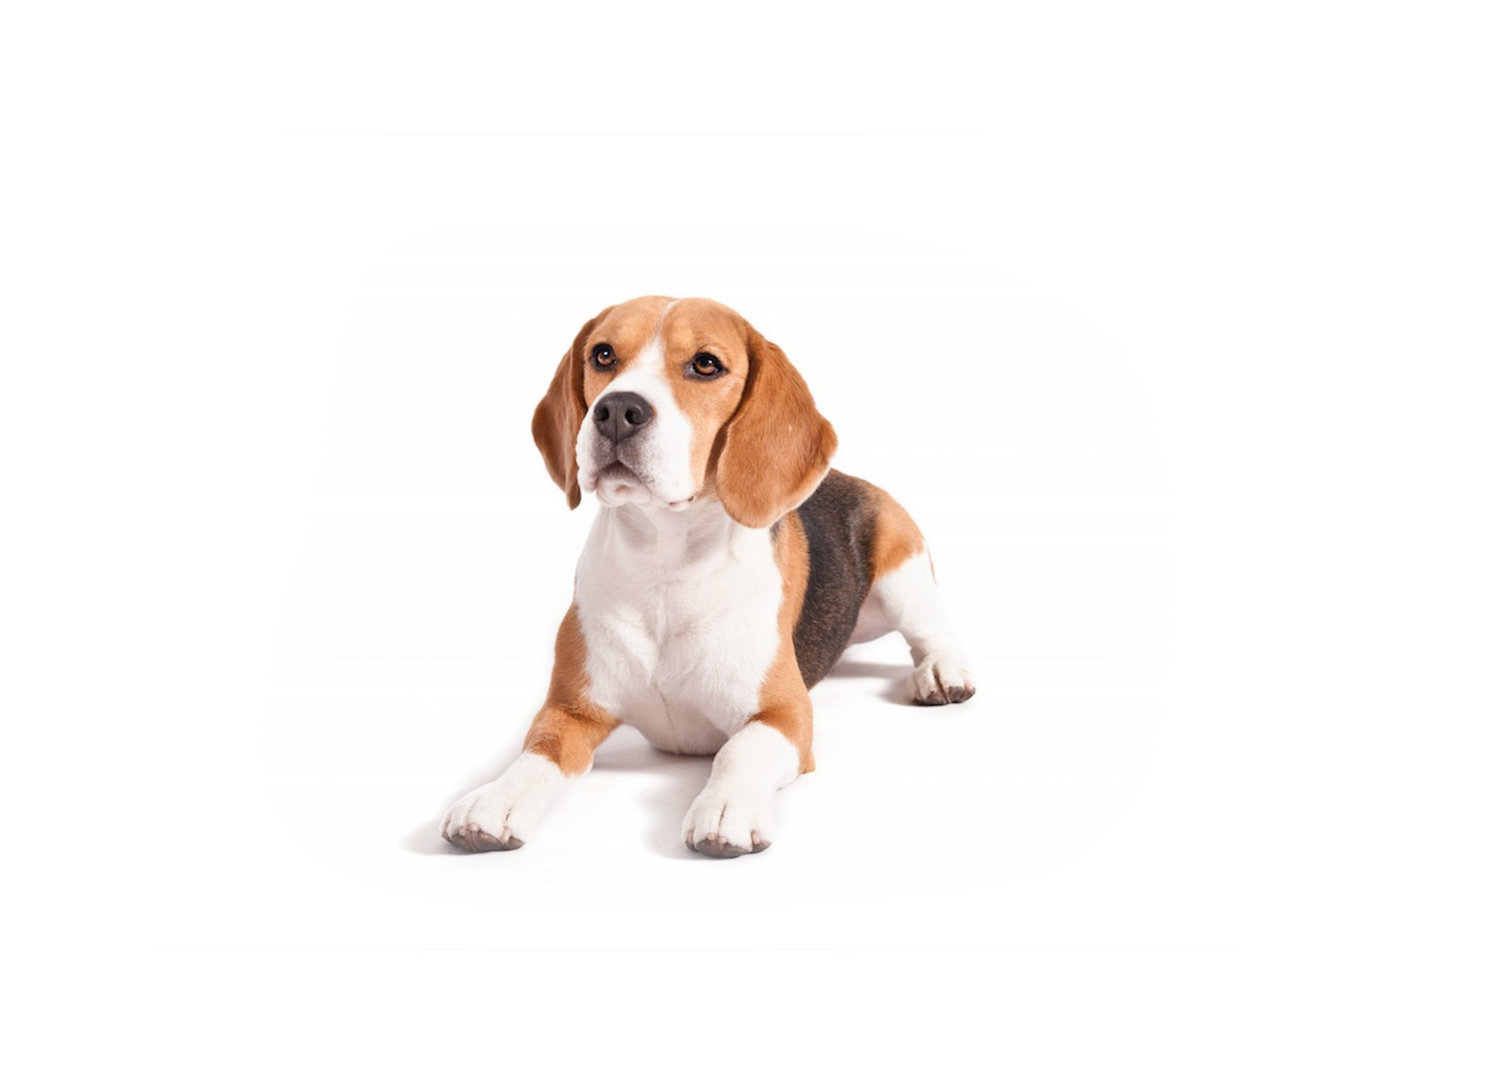 BEAGLE+PHOTOSHOP.jpg